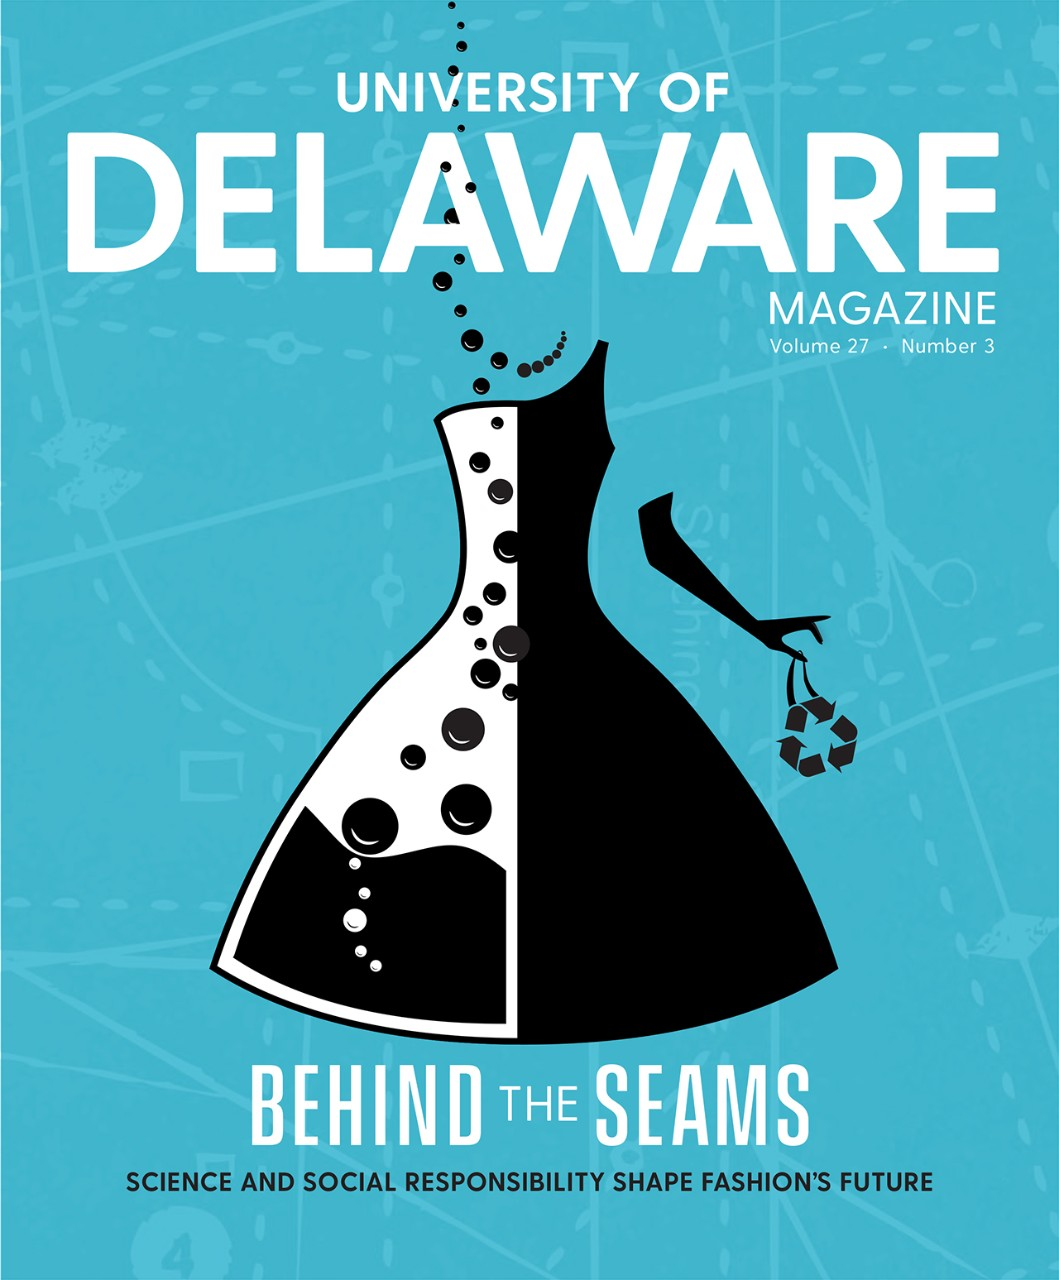 Cover of the UD Magazine